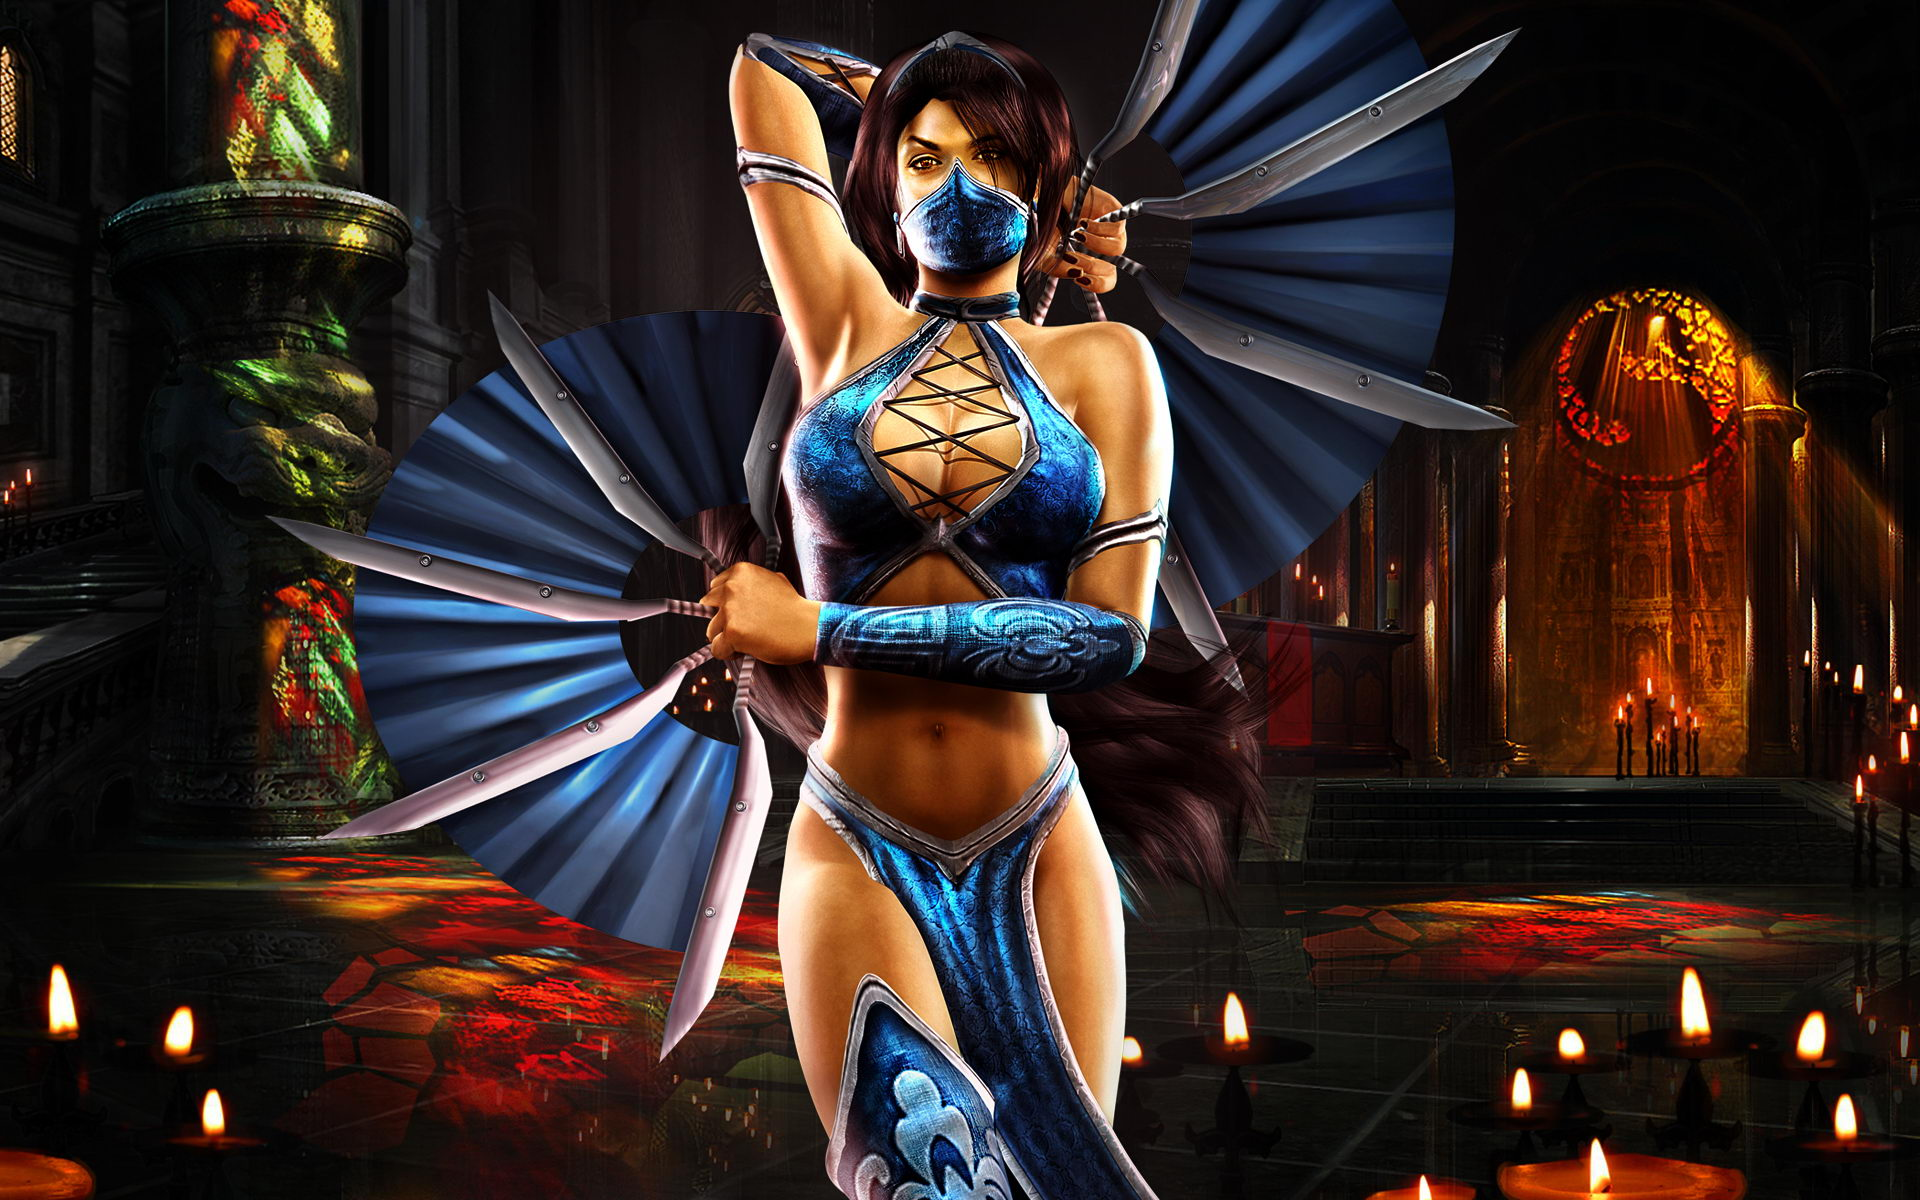 mortal kombat high resolution hd wallpapers - all hd wallpapers